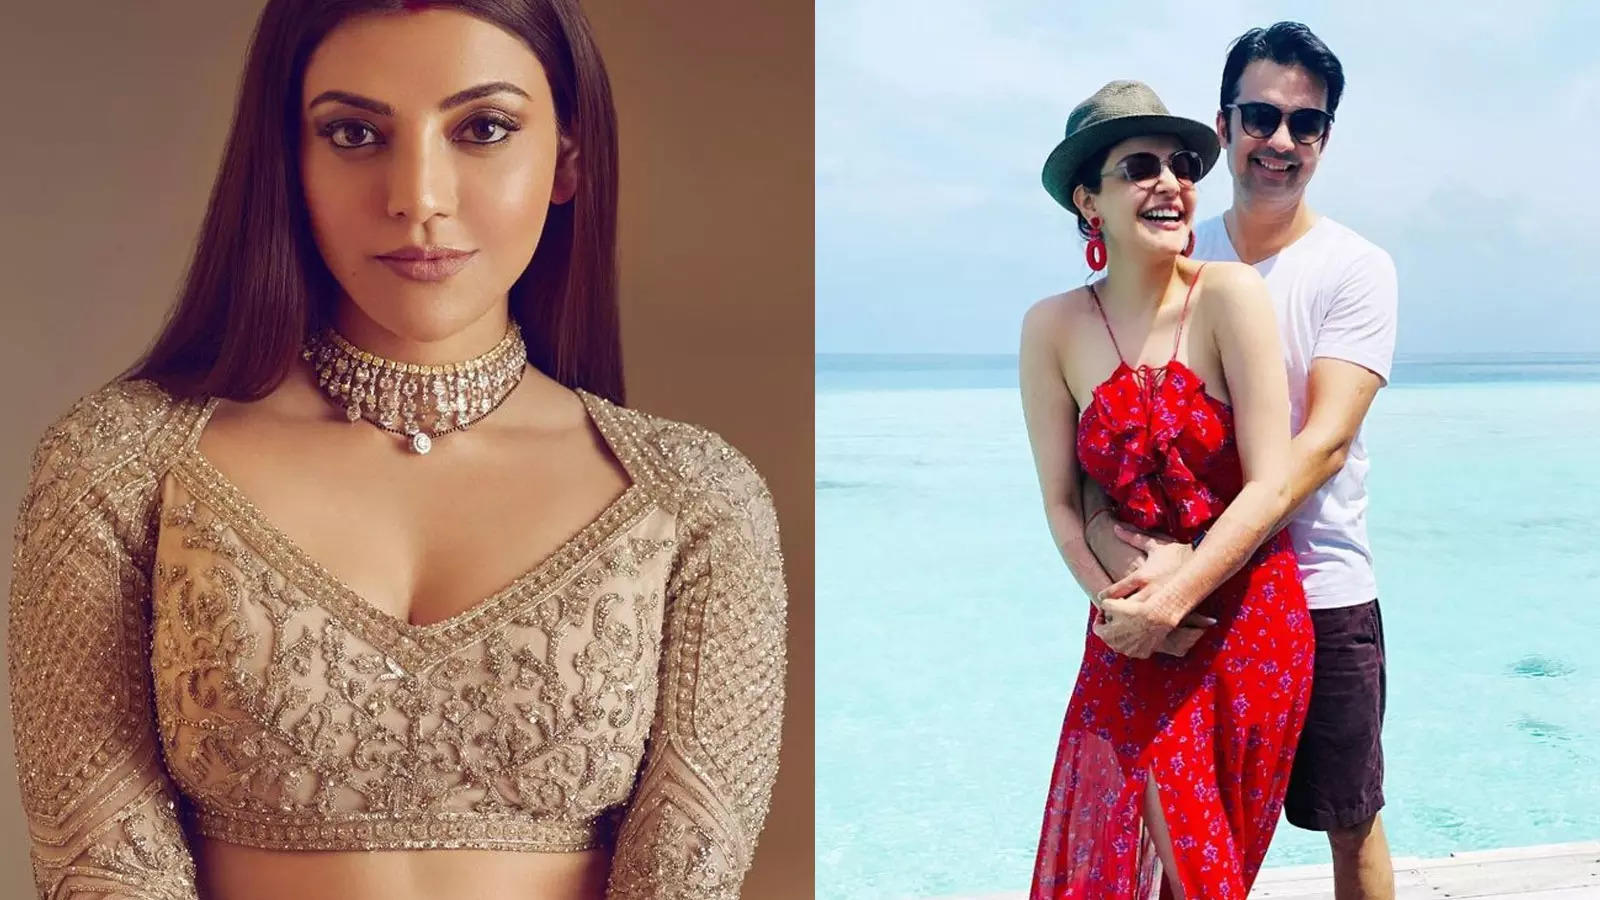 kajal-aggarwal-to-soon-join-the-fabulous-bollywood-moms-club-rumour-has-it-that-she-is-pregnant-with-her-first-child